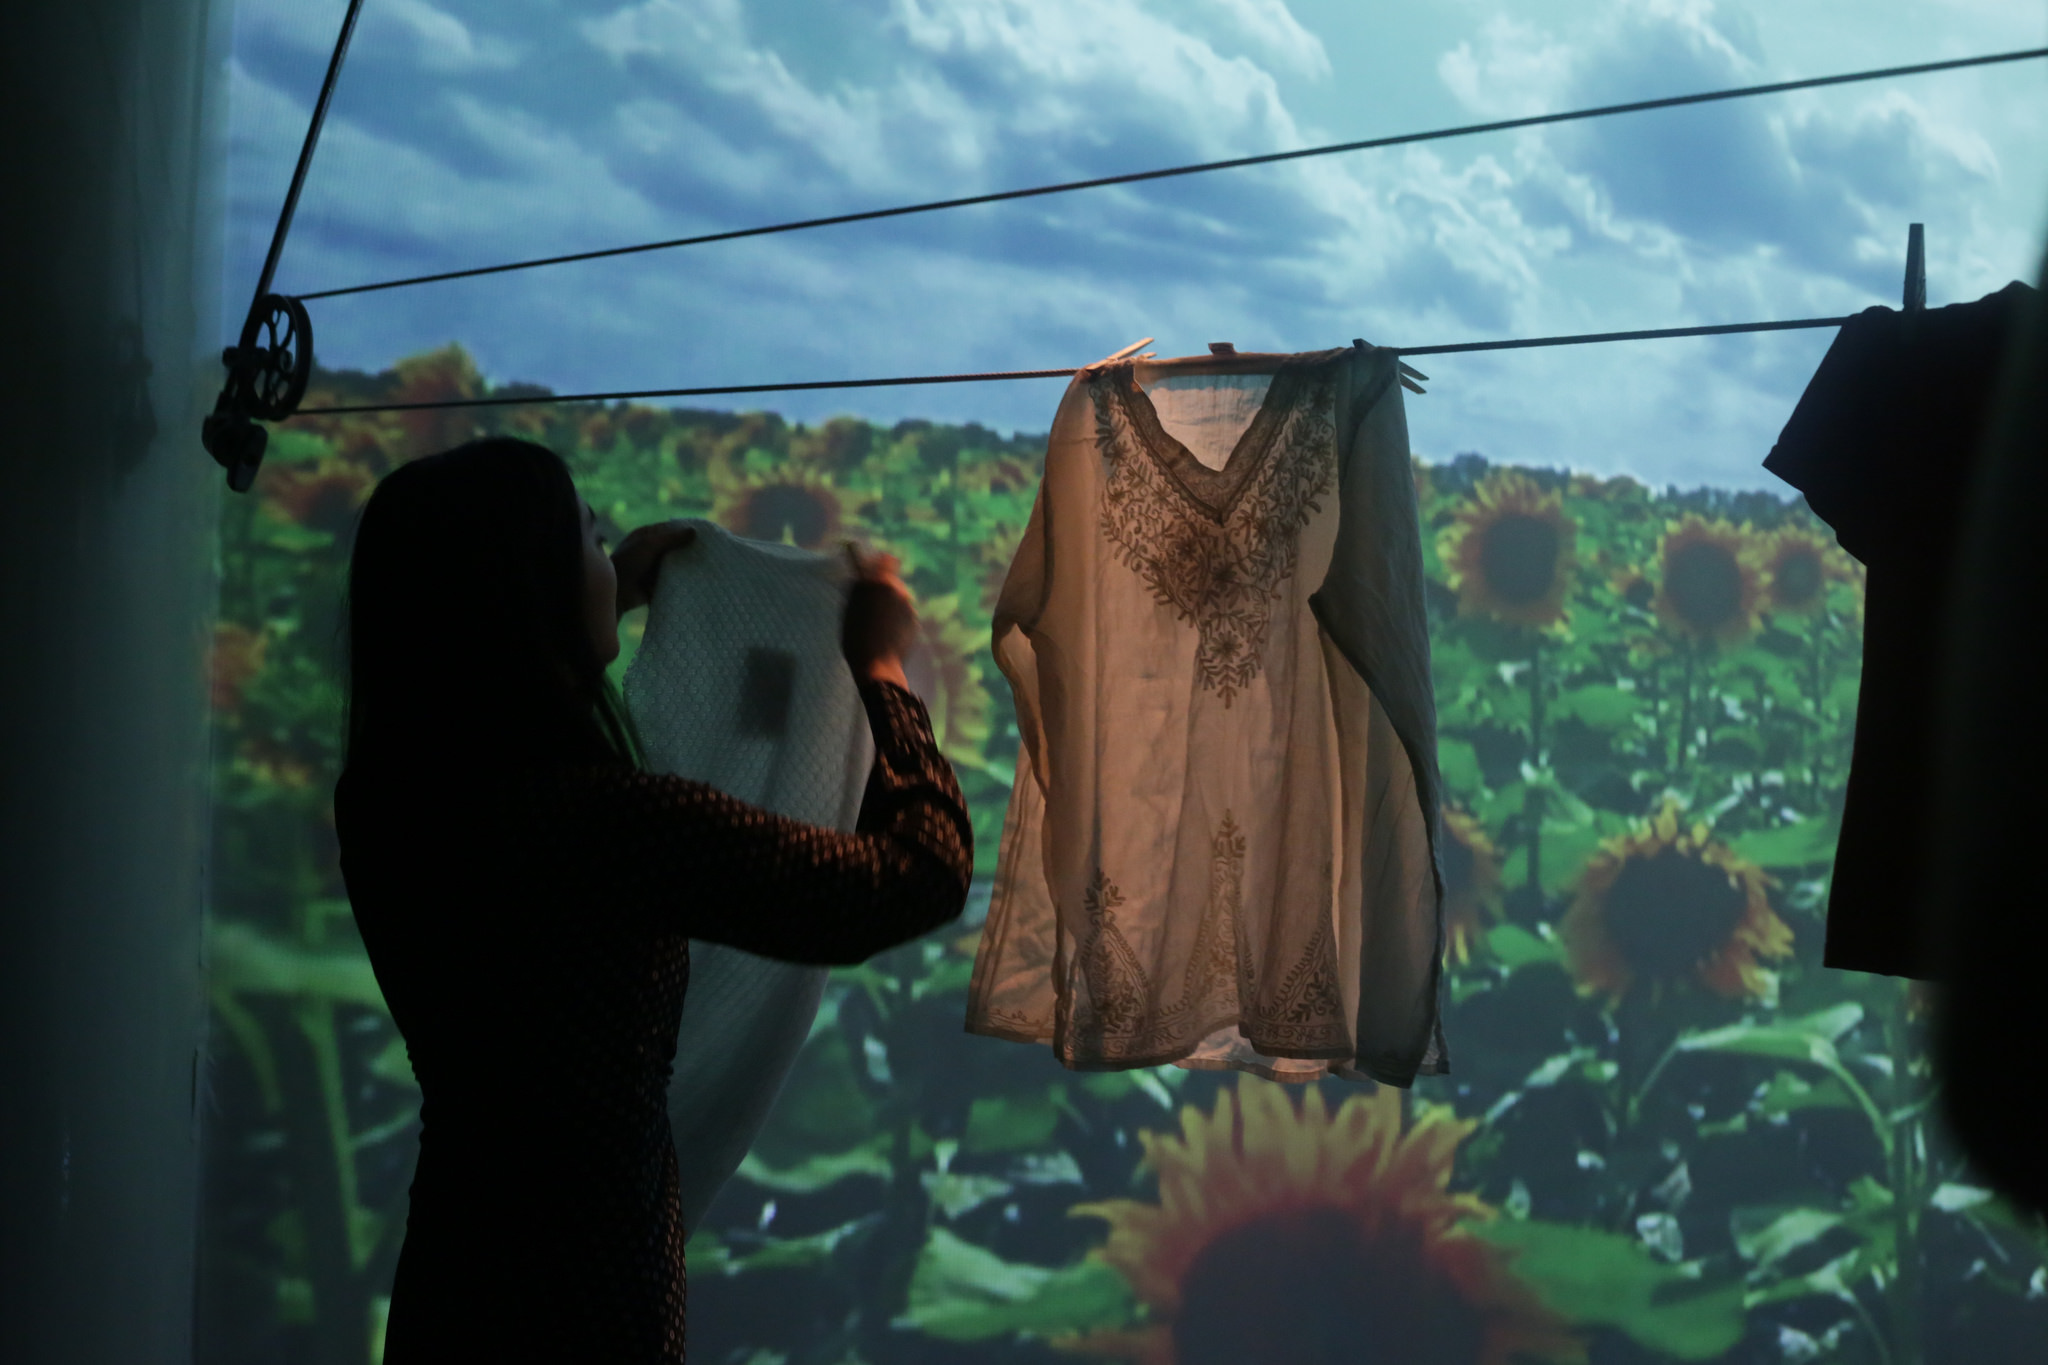 Woman hanging laundry in front of a projected field of sunflowers